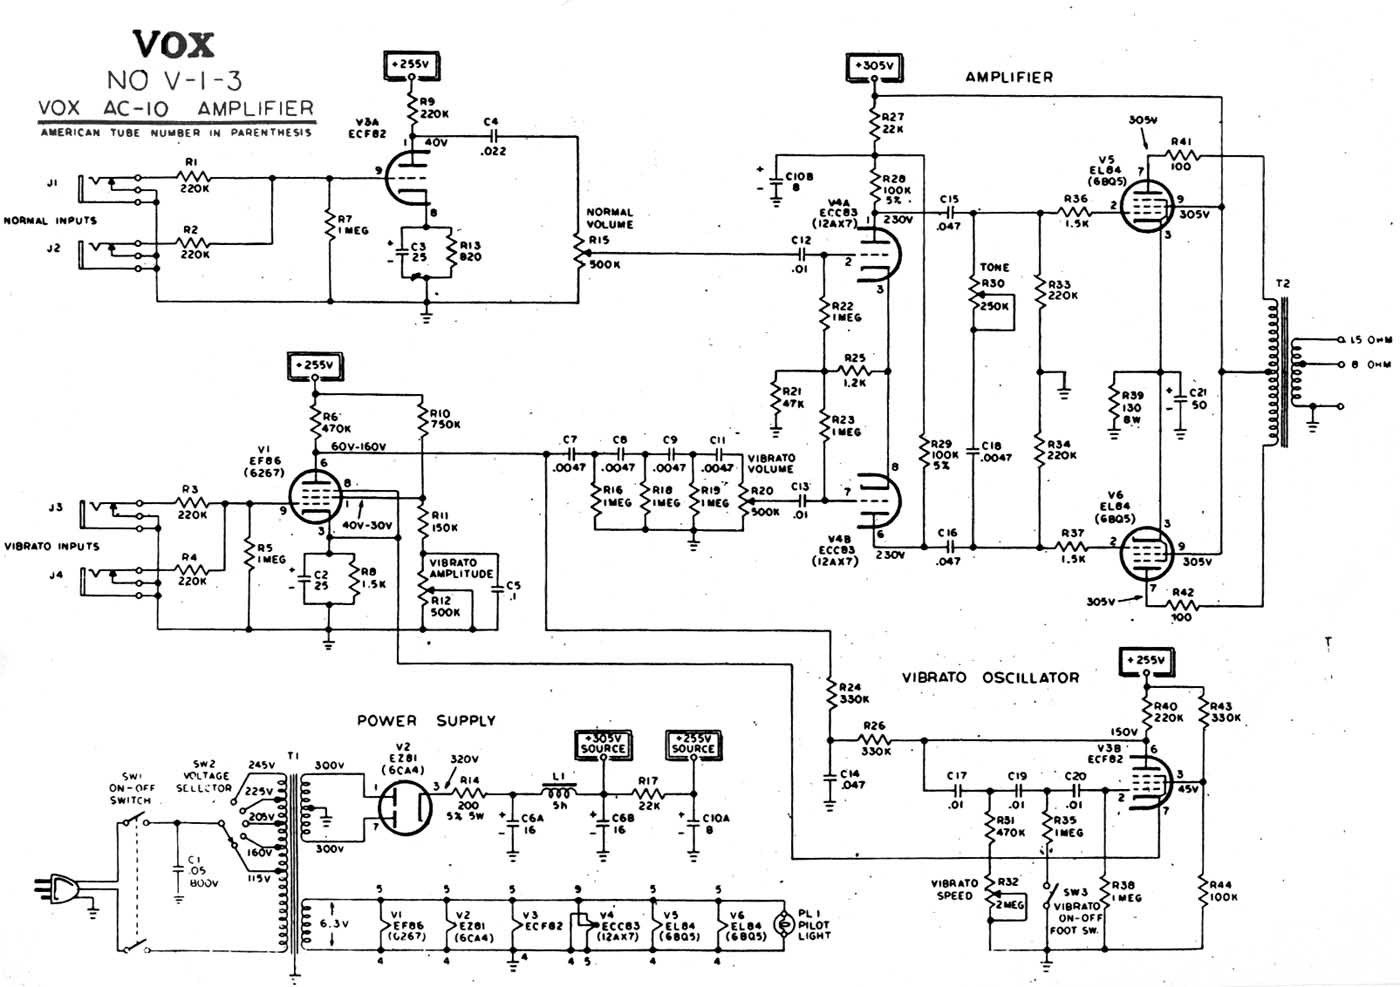 Gm Ac Wiring Diagram Real A Body Diagrams Vox Vintage Circuit C Compressor Air Conditioning